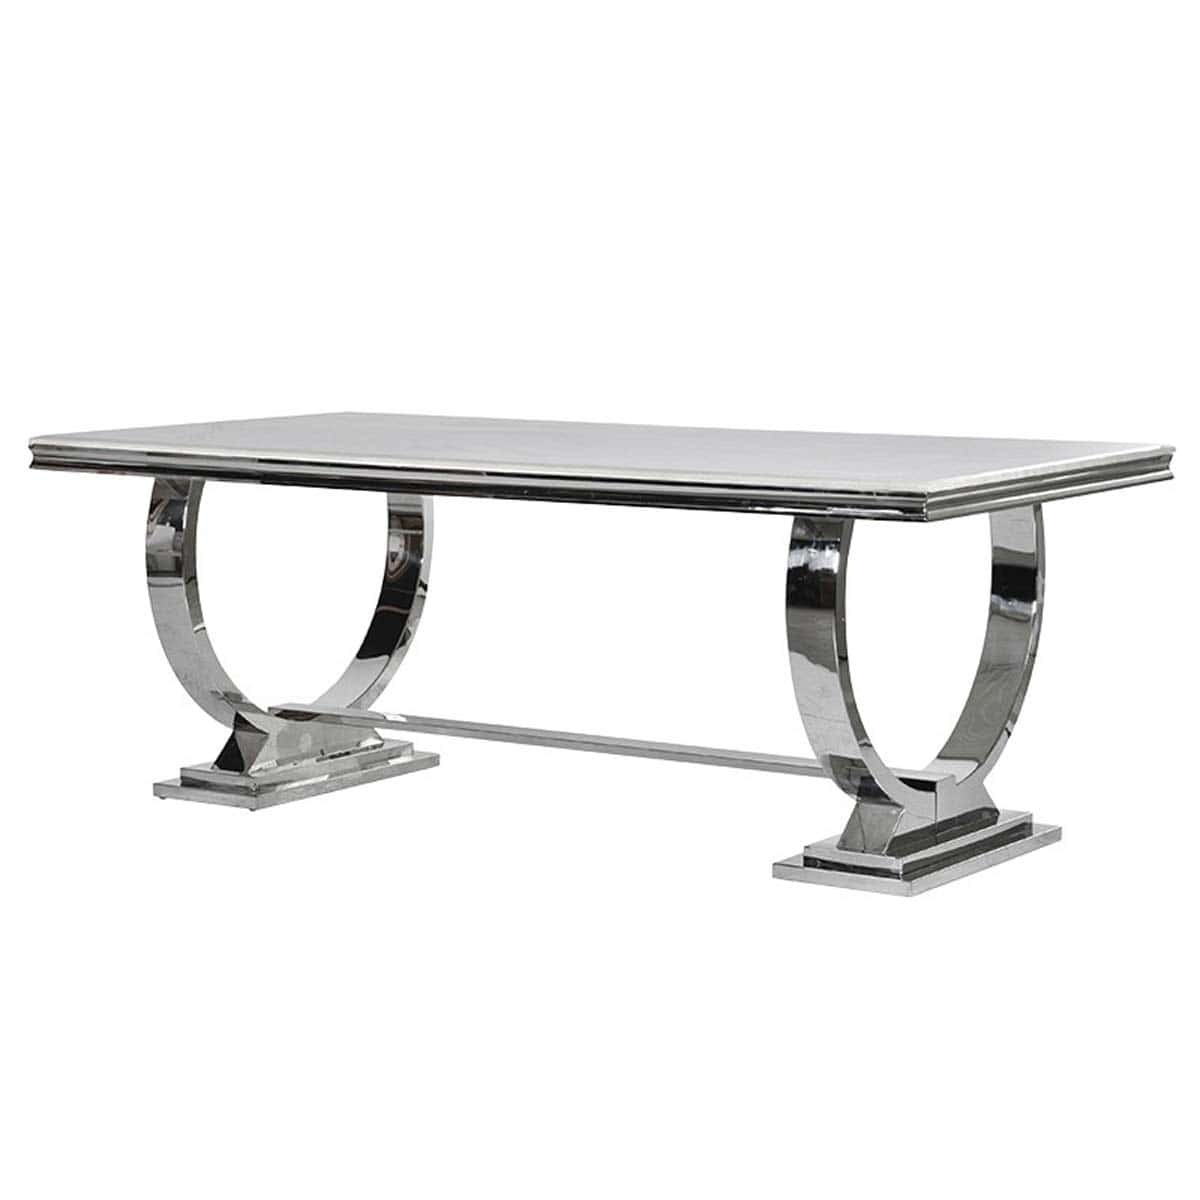 Cream Marble Top and Chrome U shape Atlas Dining Table